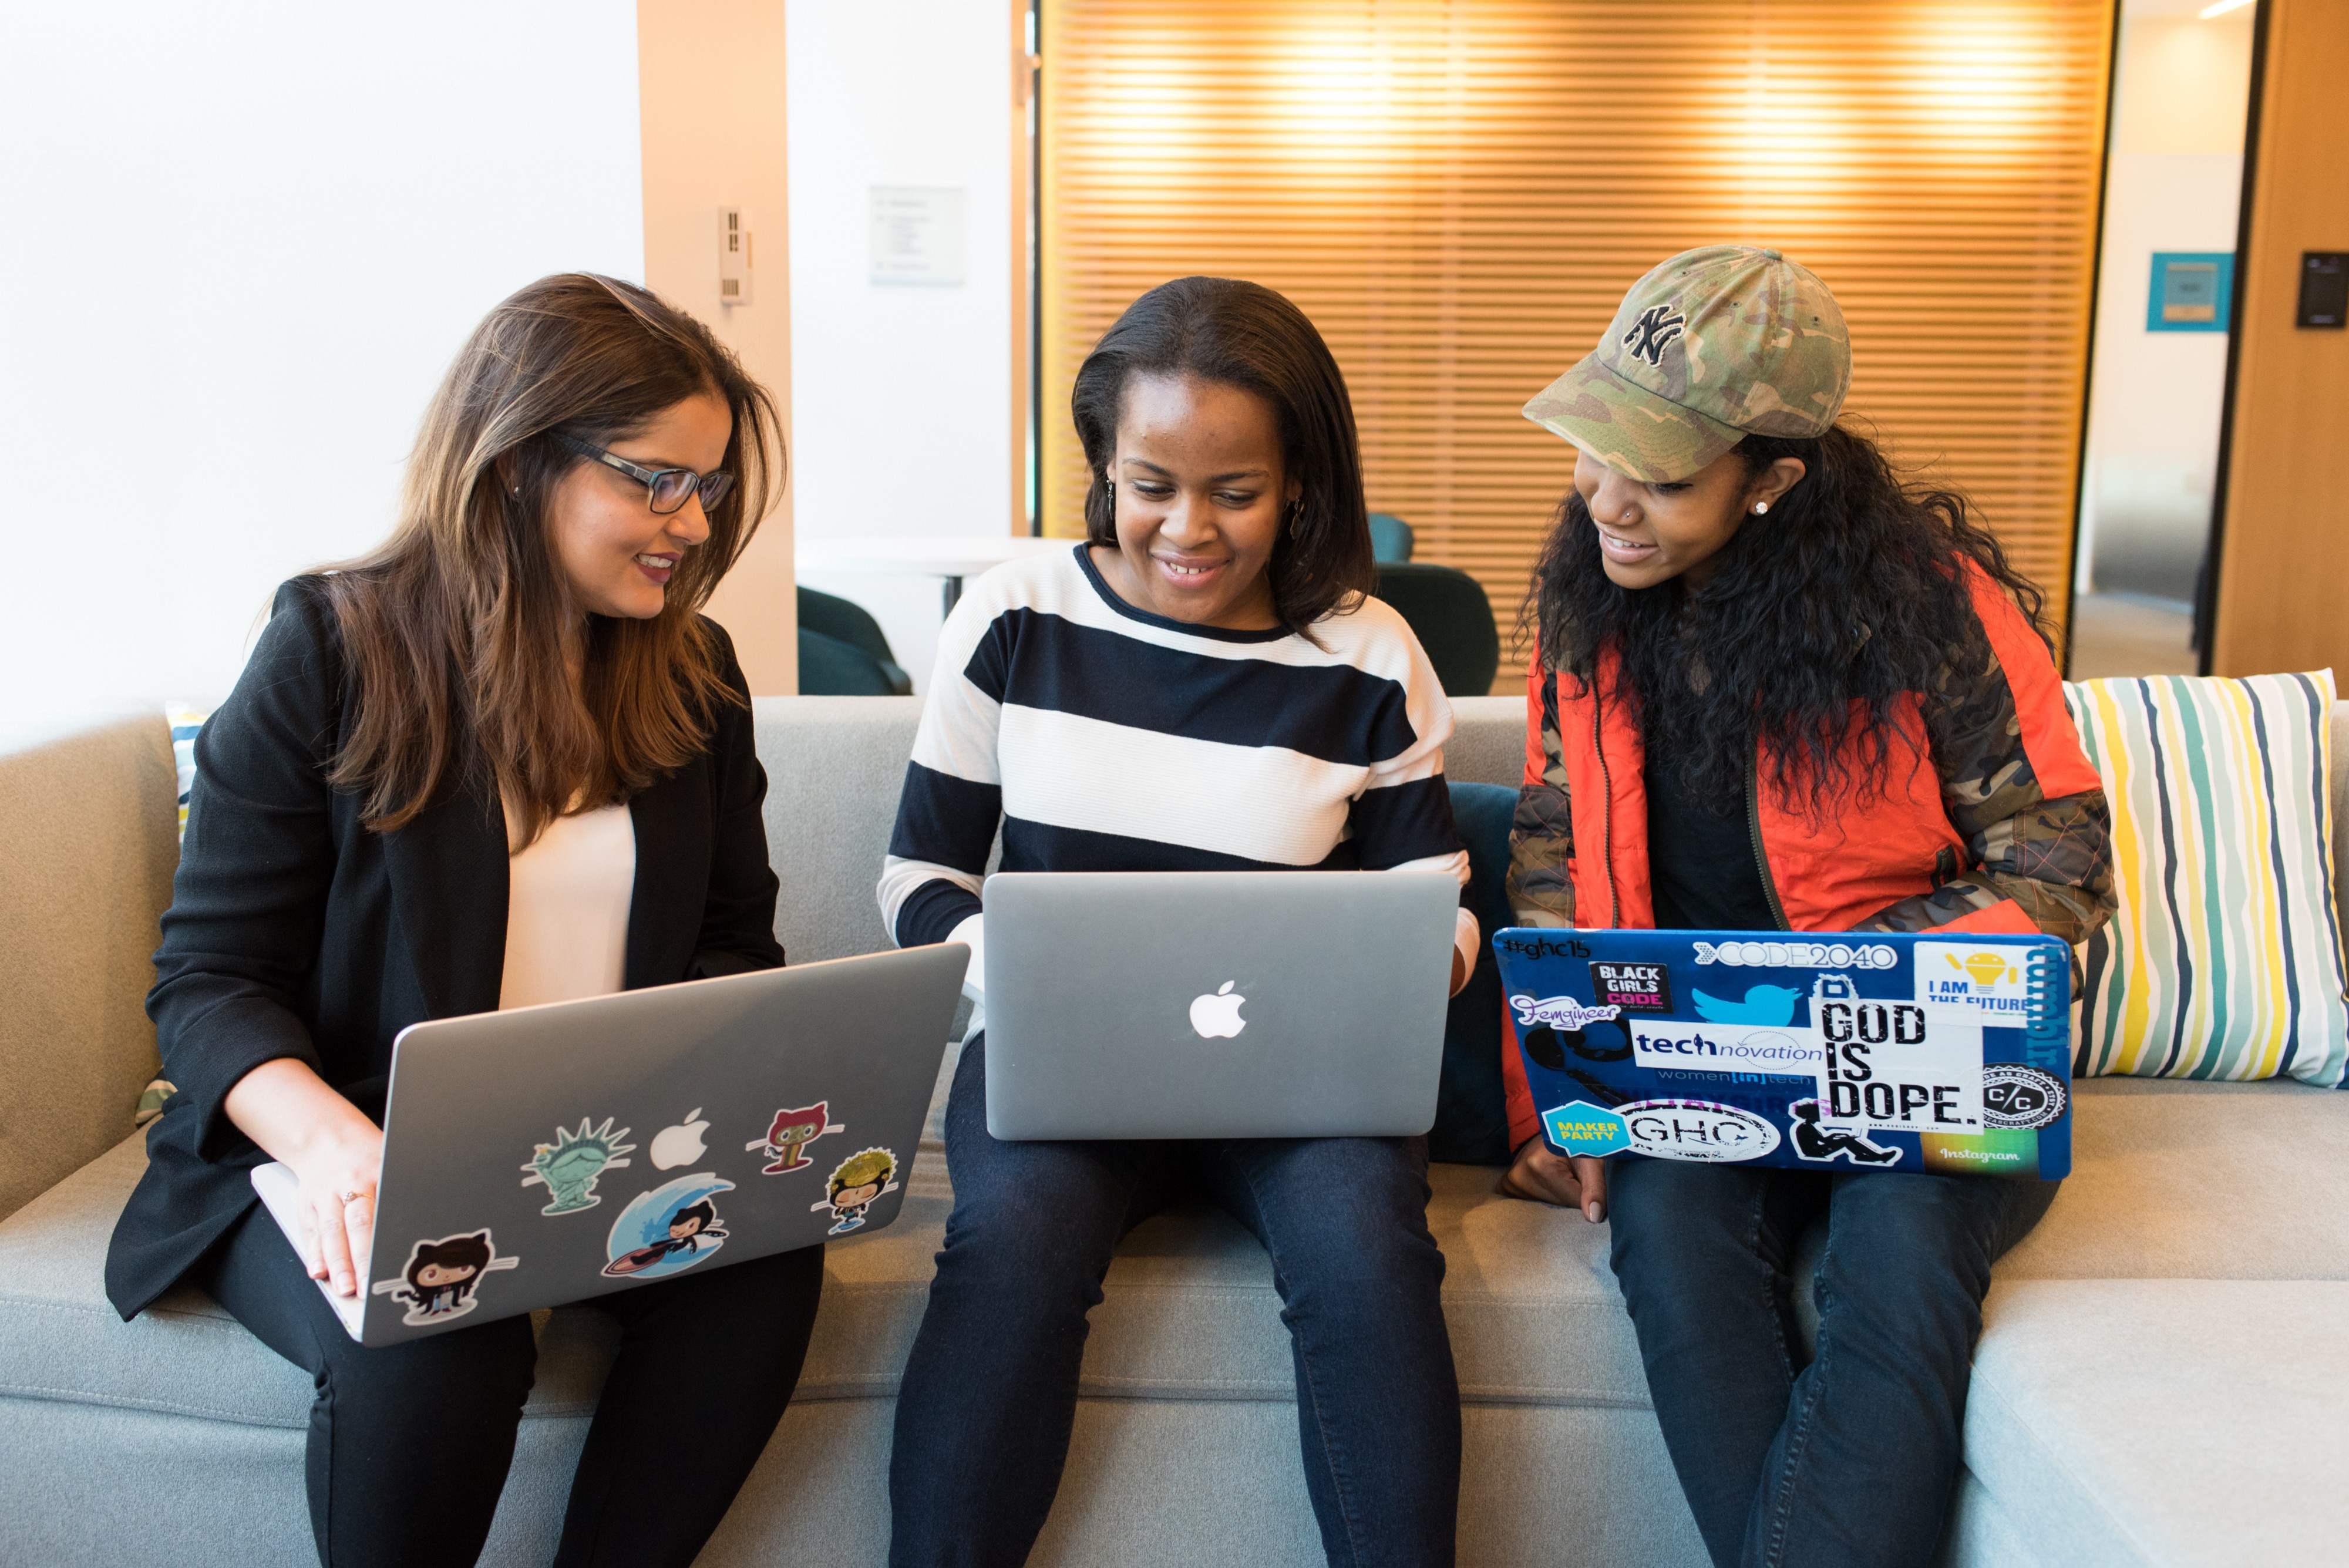 Three young women sit around a couch looking at their laptops.